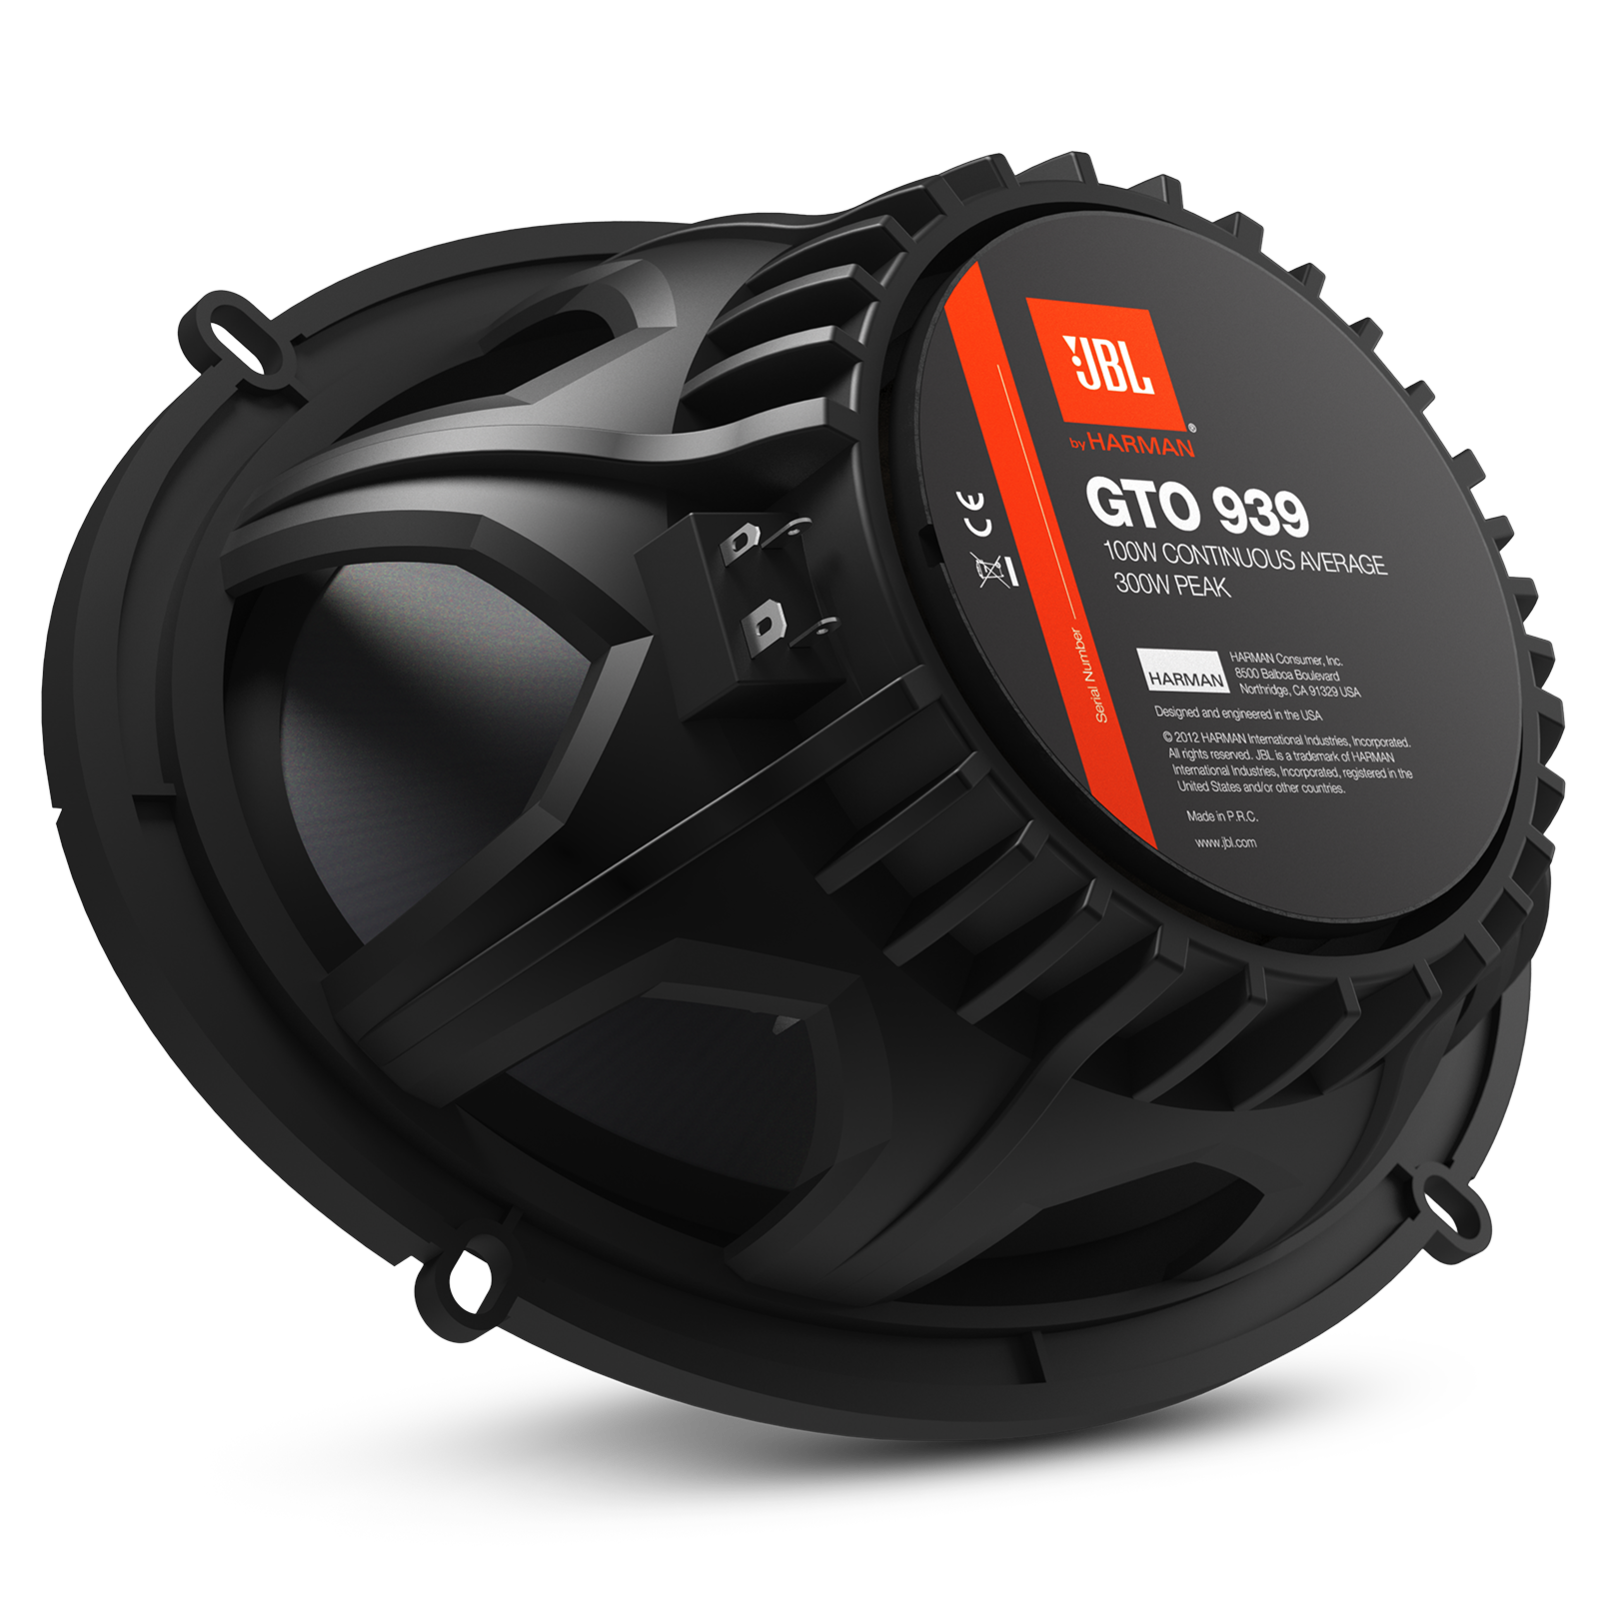 This JBL Series Incorporates Many Patents That